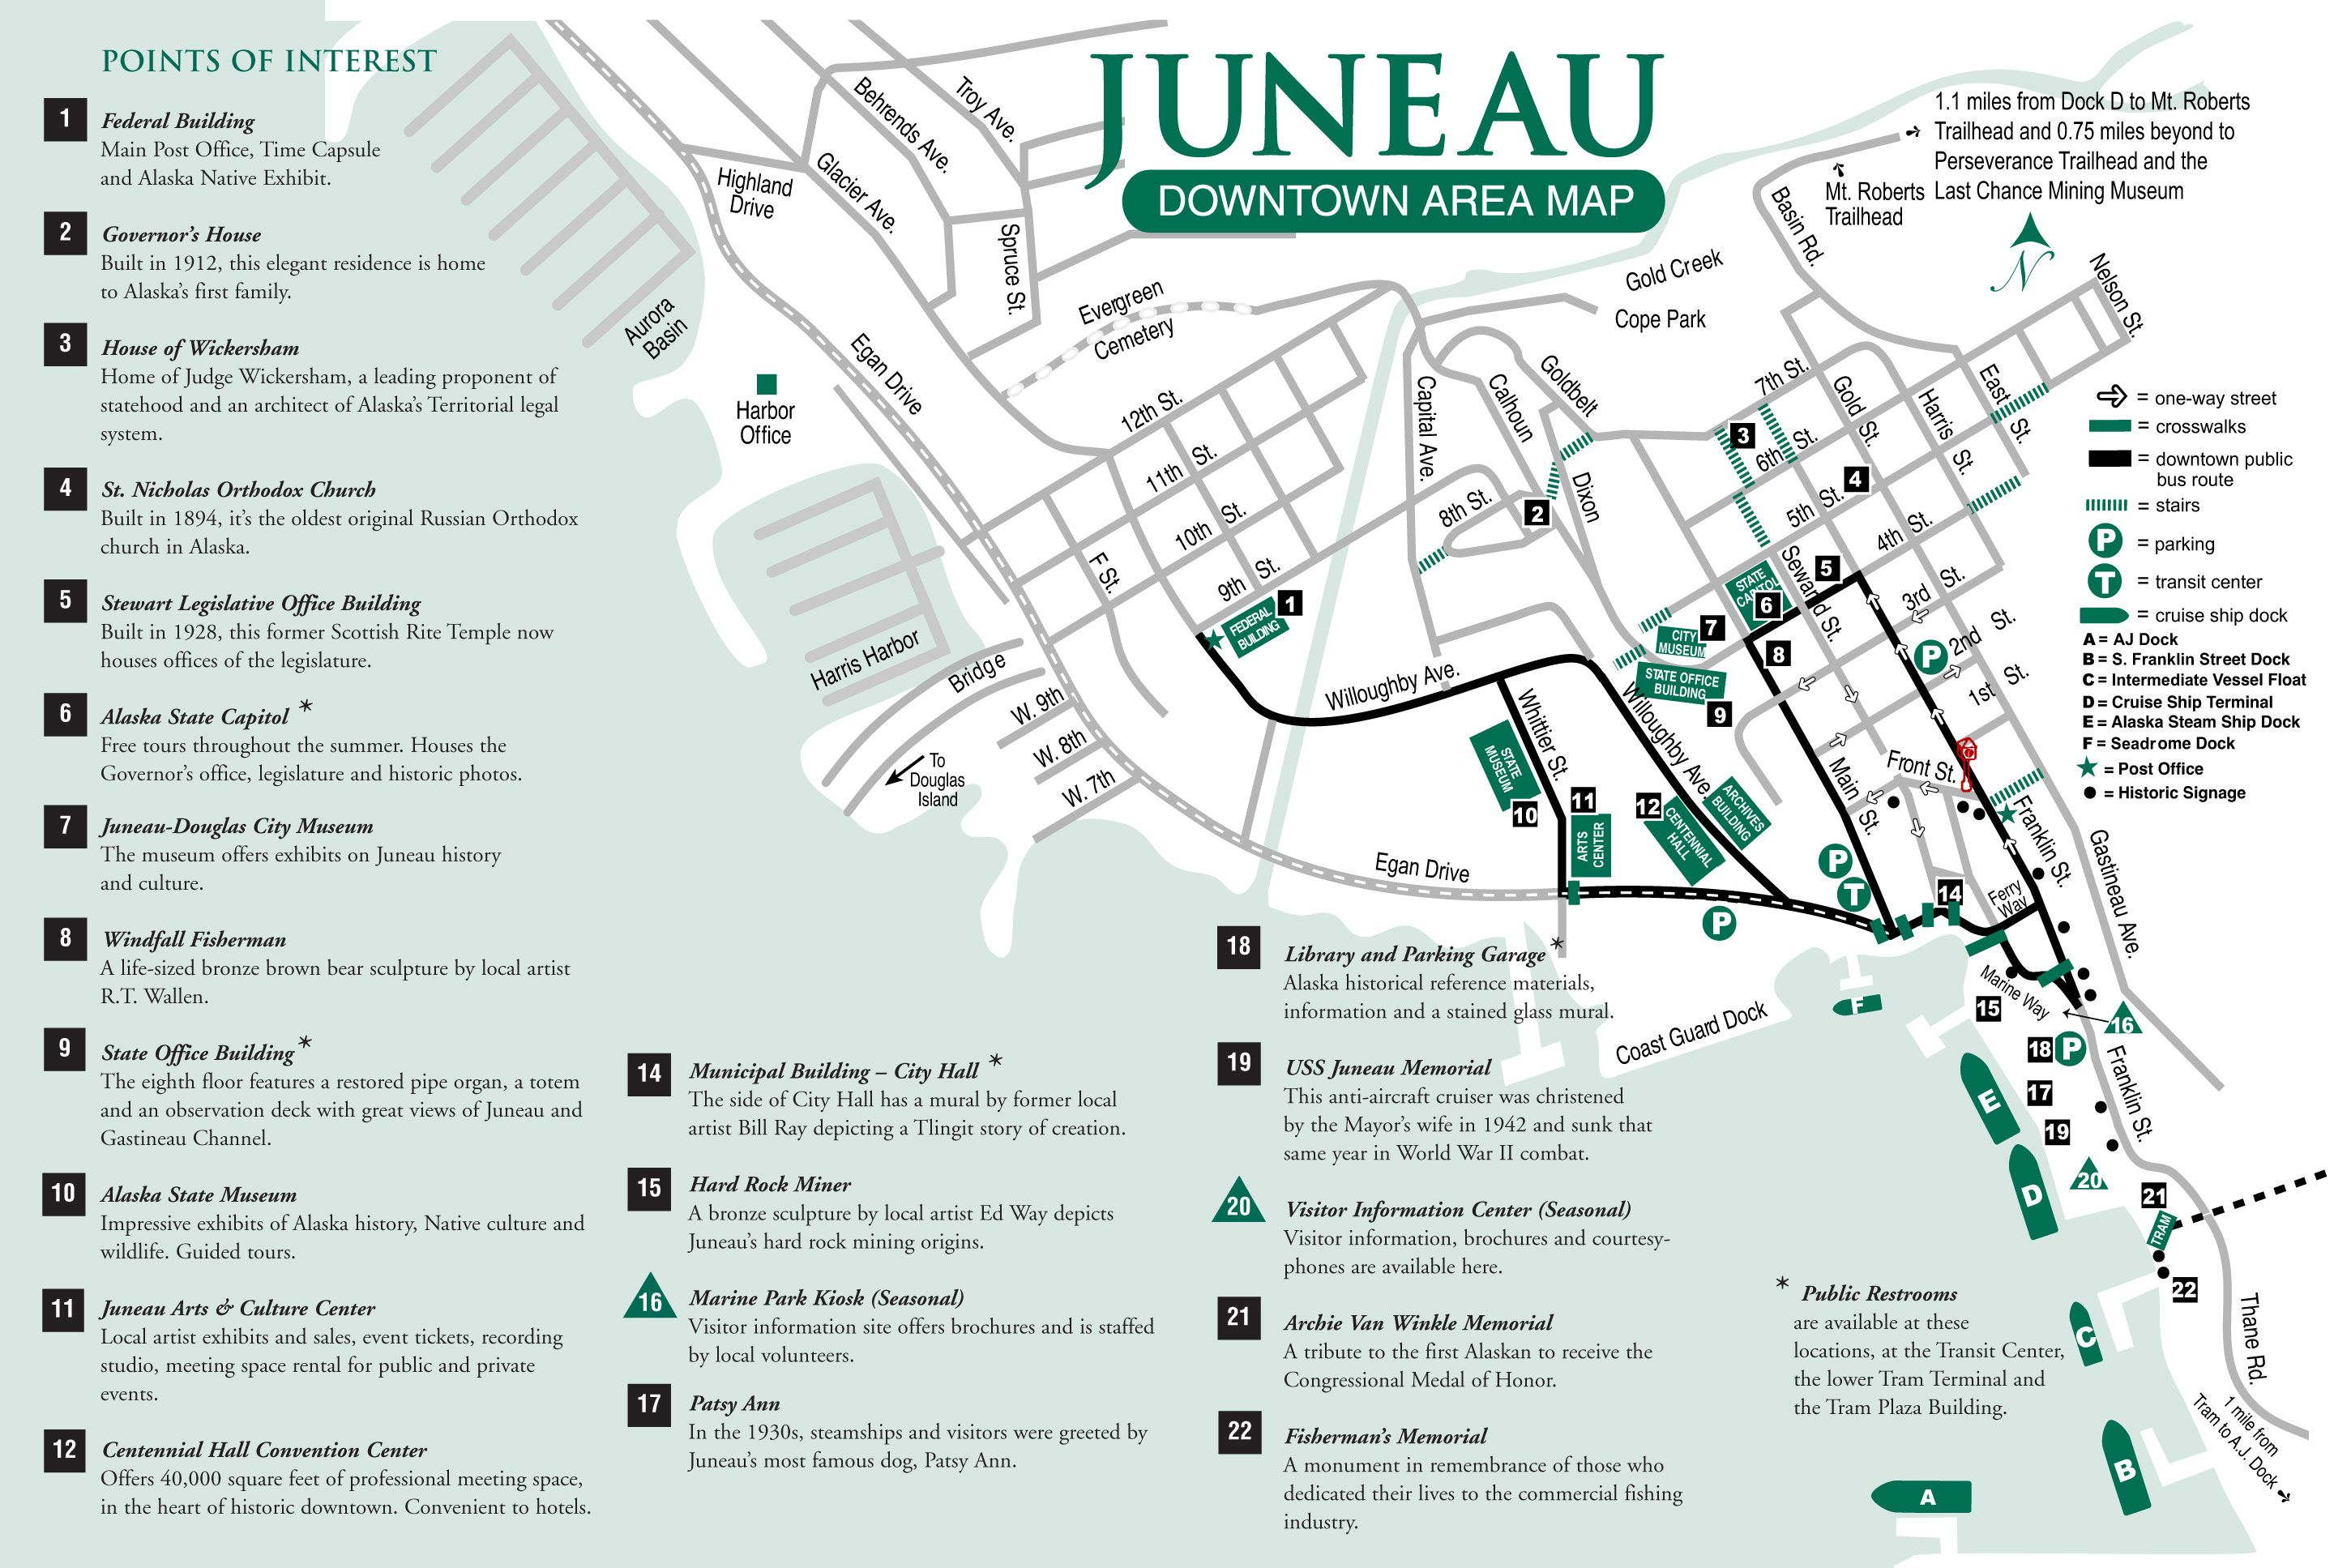 A Very Good Map Of Dowtown Juneau To Plan Your Visit